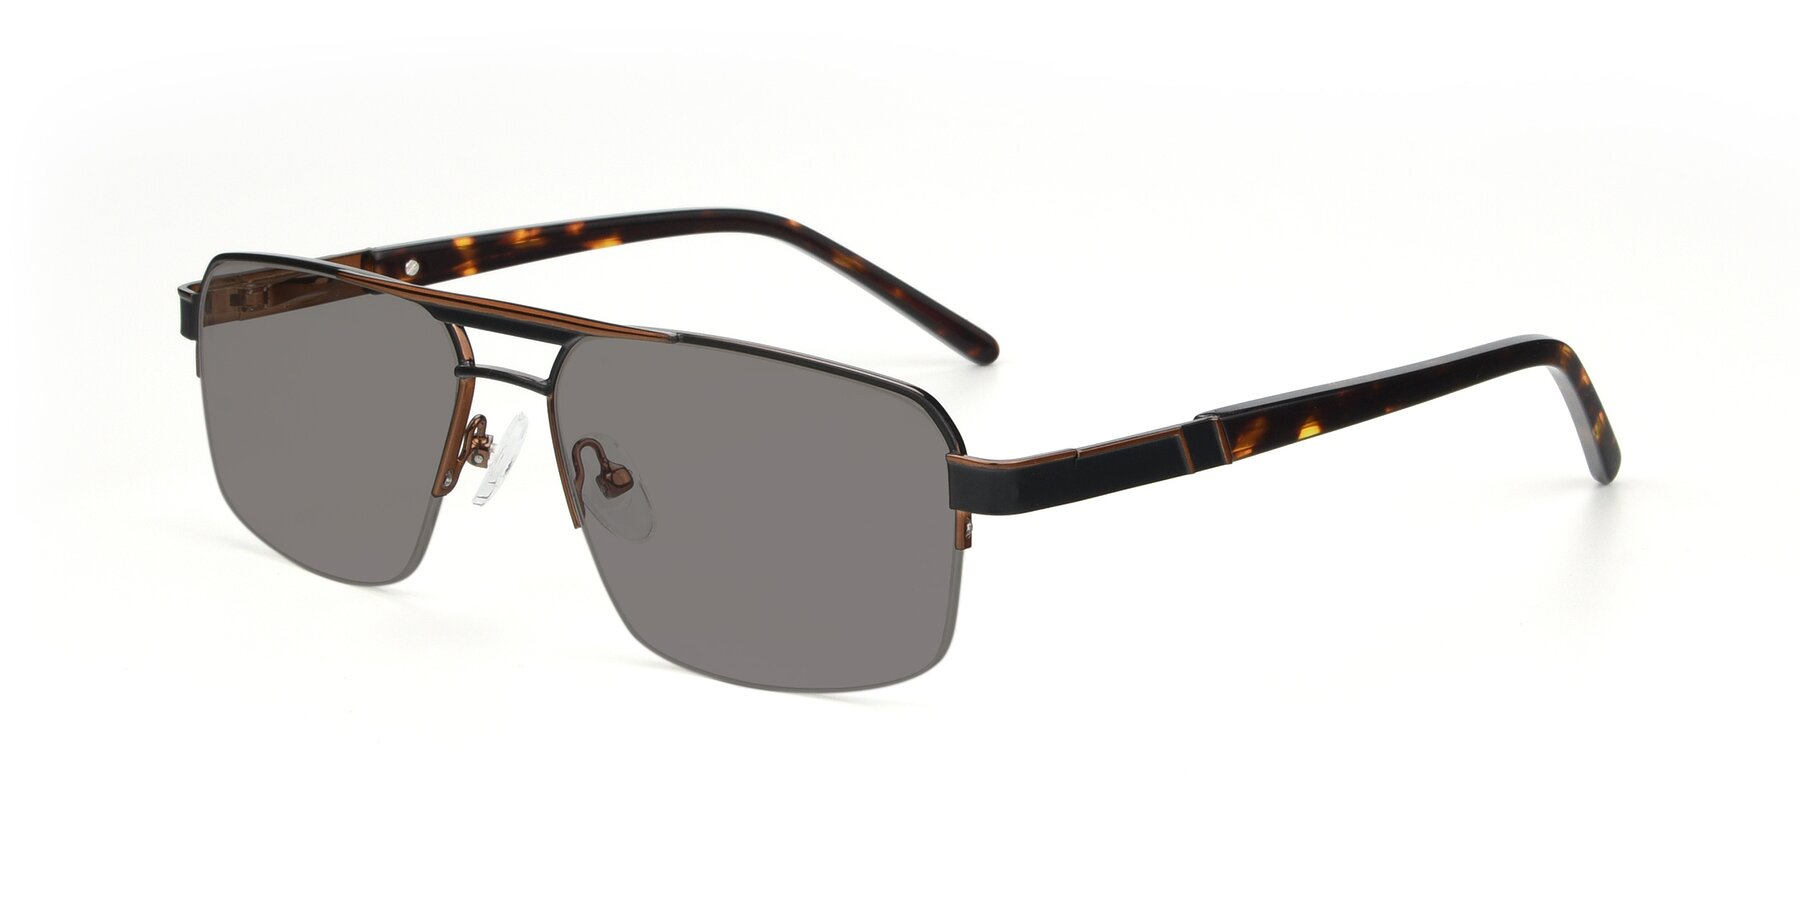 Angle of 19004 in Black-Bronze with Medium Gray Tinted Lenses